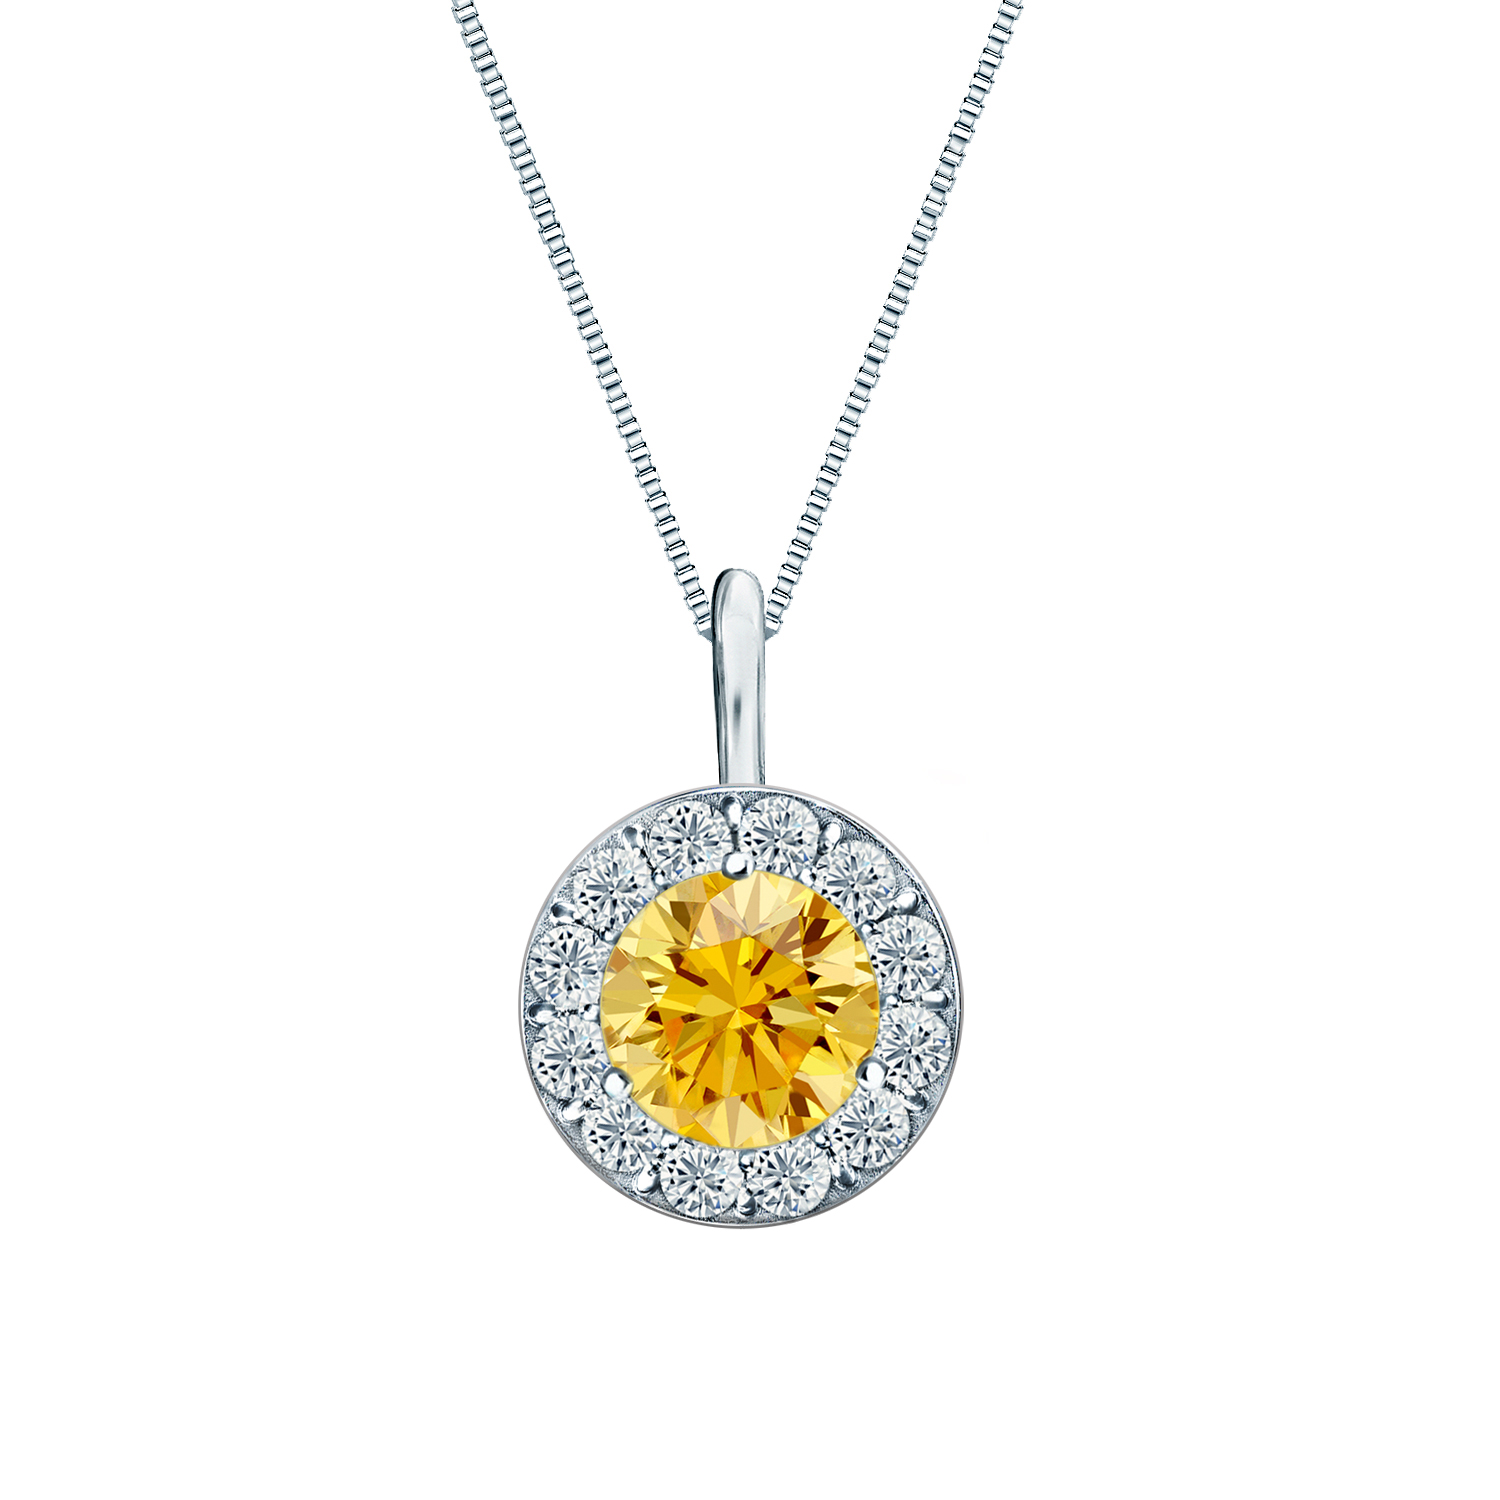 Certified 0.25 ct. tw. Round Yellow Diamond Pendant in 14k White Gold Halo (AAA)